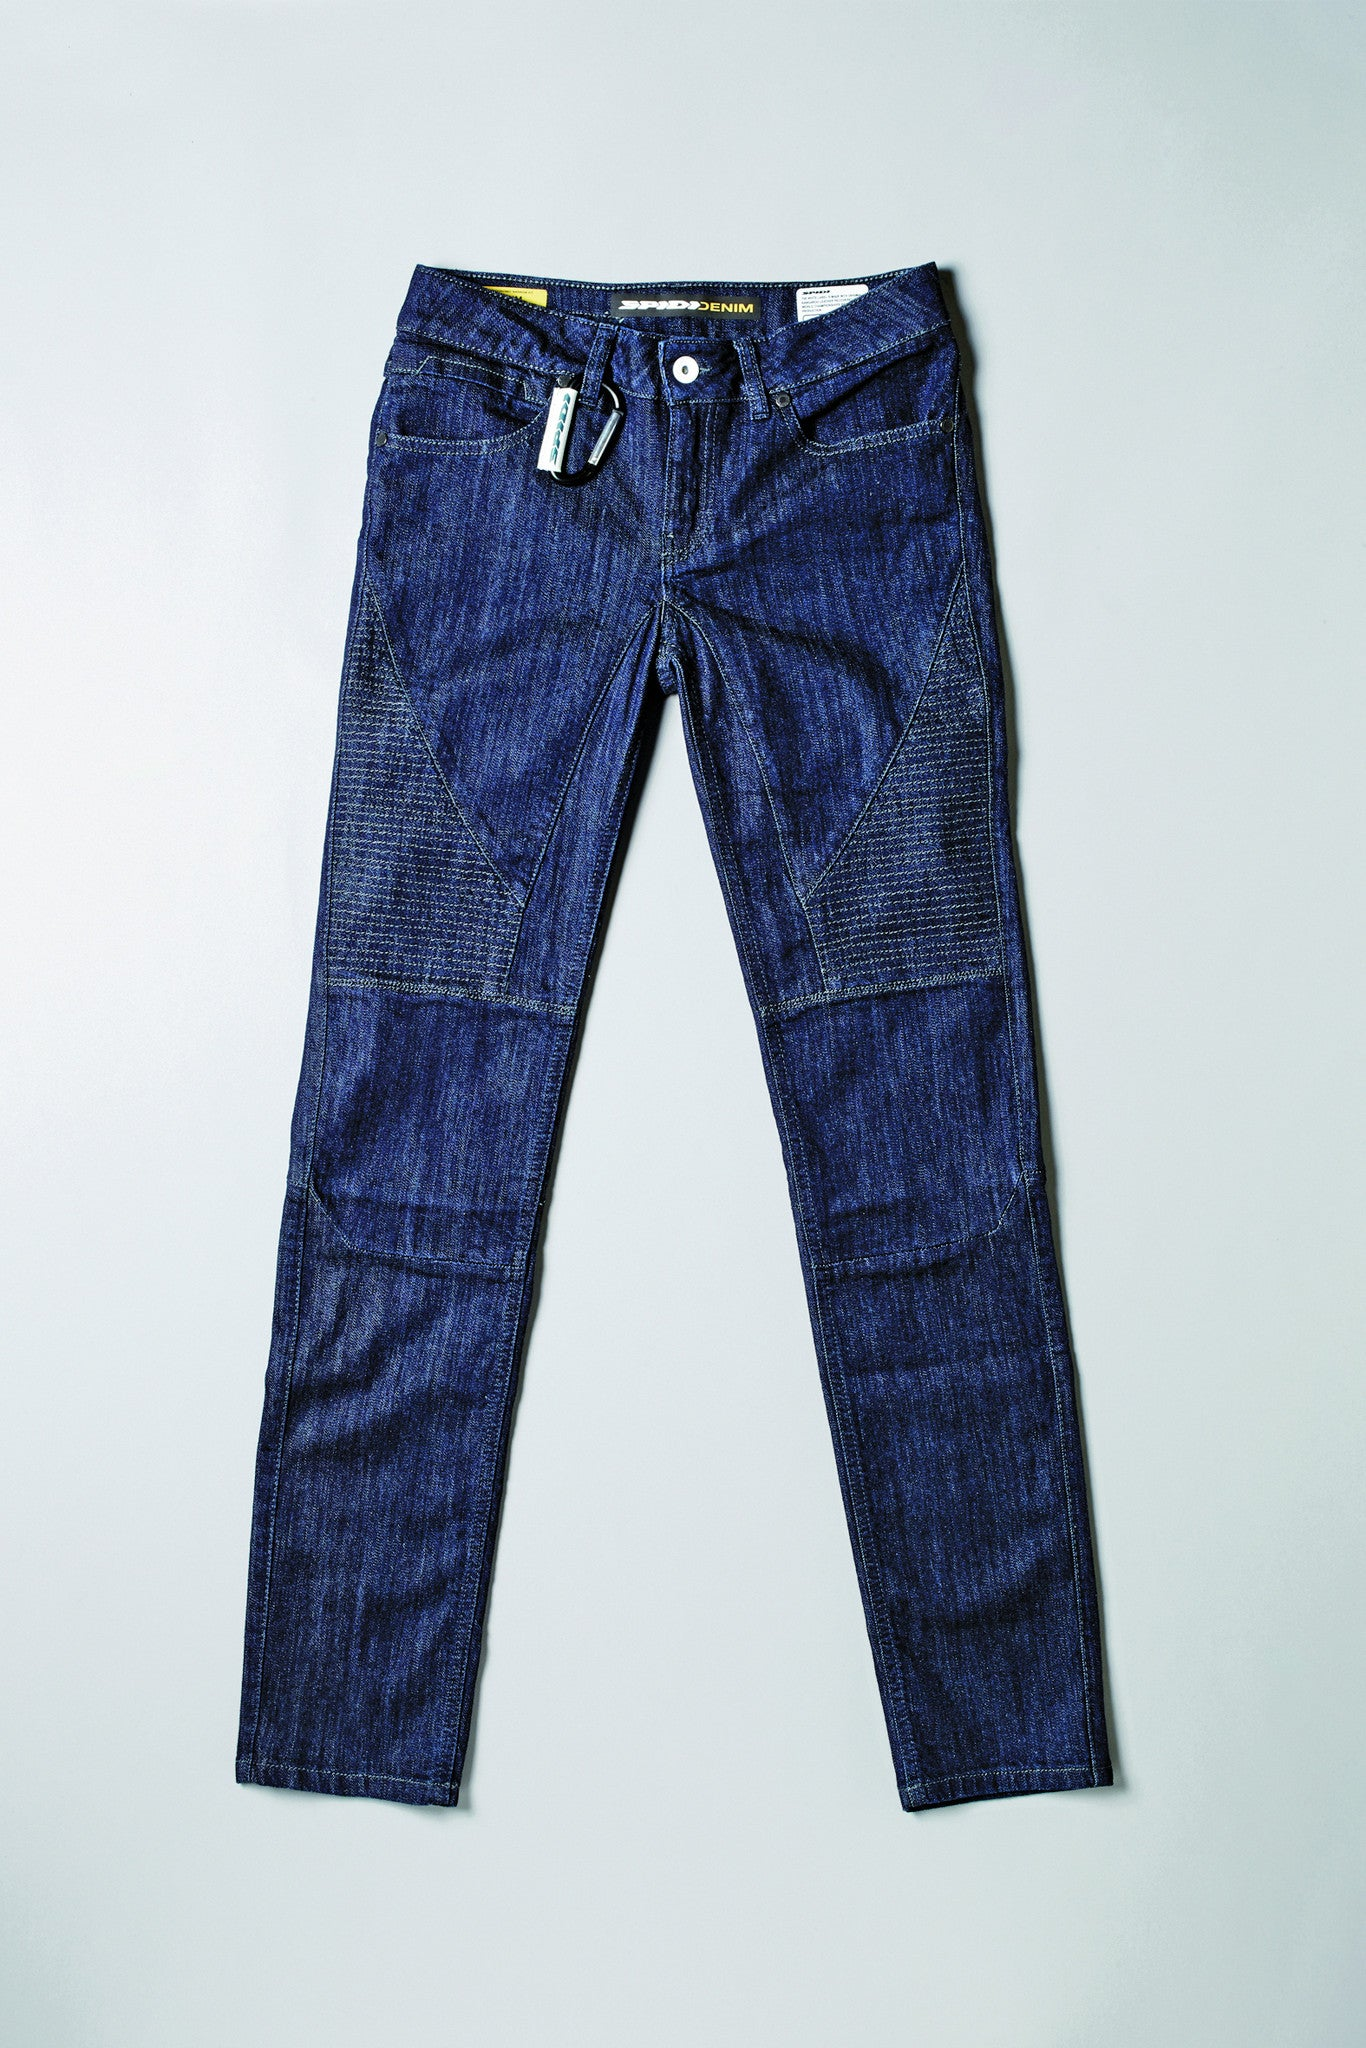 Lady Racer - 807 Blue Denim